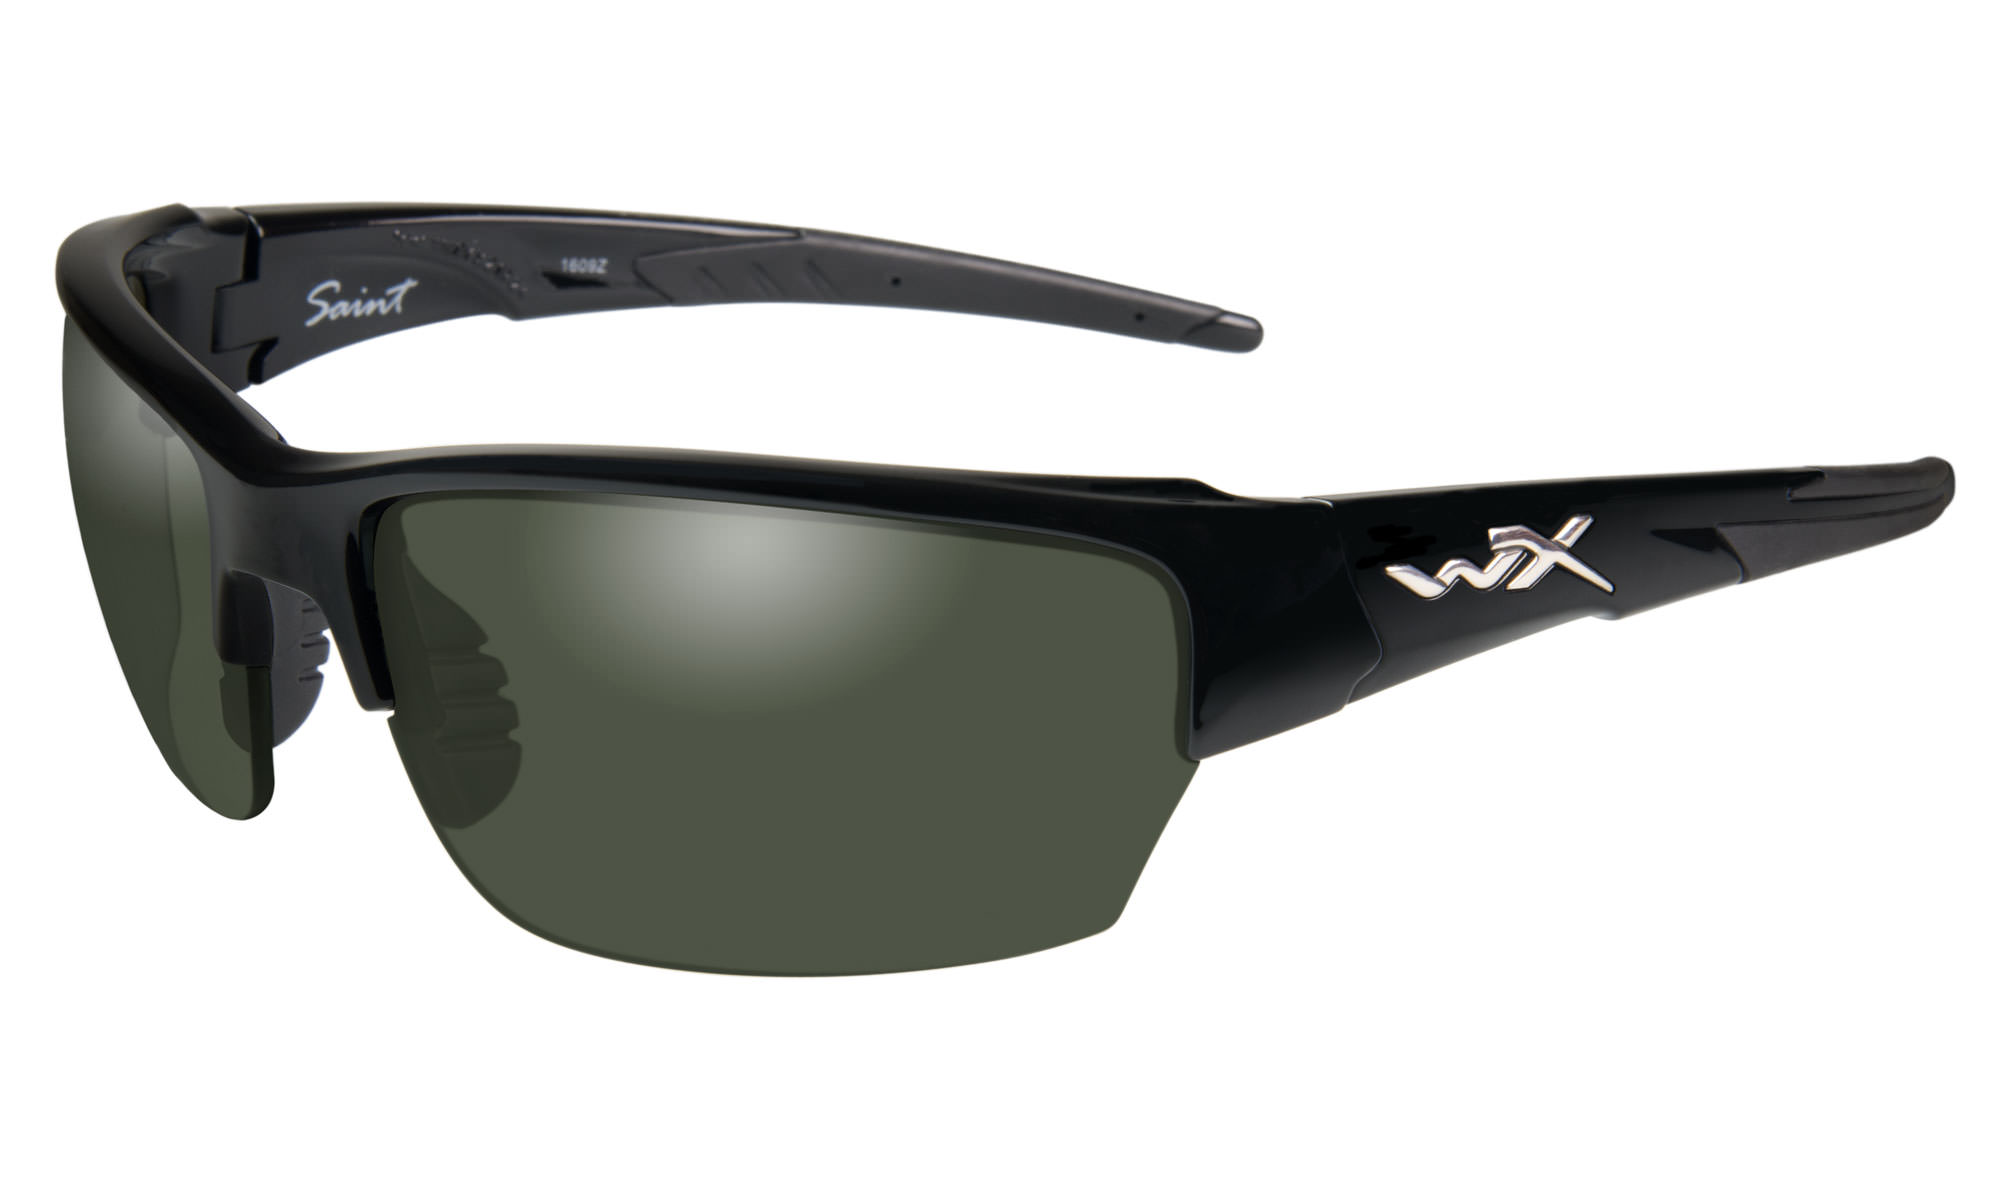 bb12ad69bee1 Wiley-X WX Saint Gloss Black with Polarized Smoke Green Lenses | Wiley X